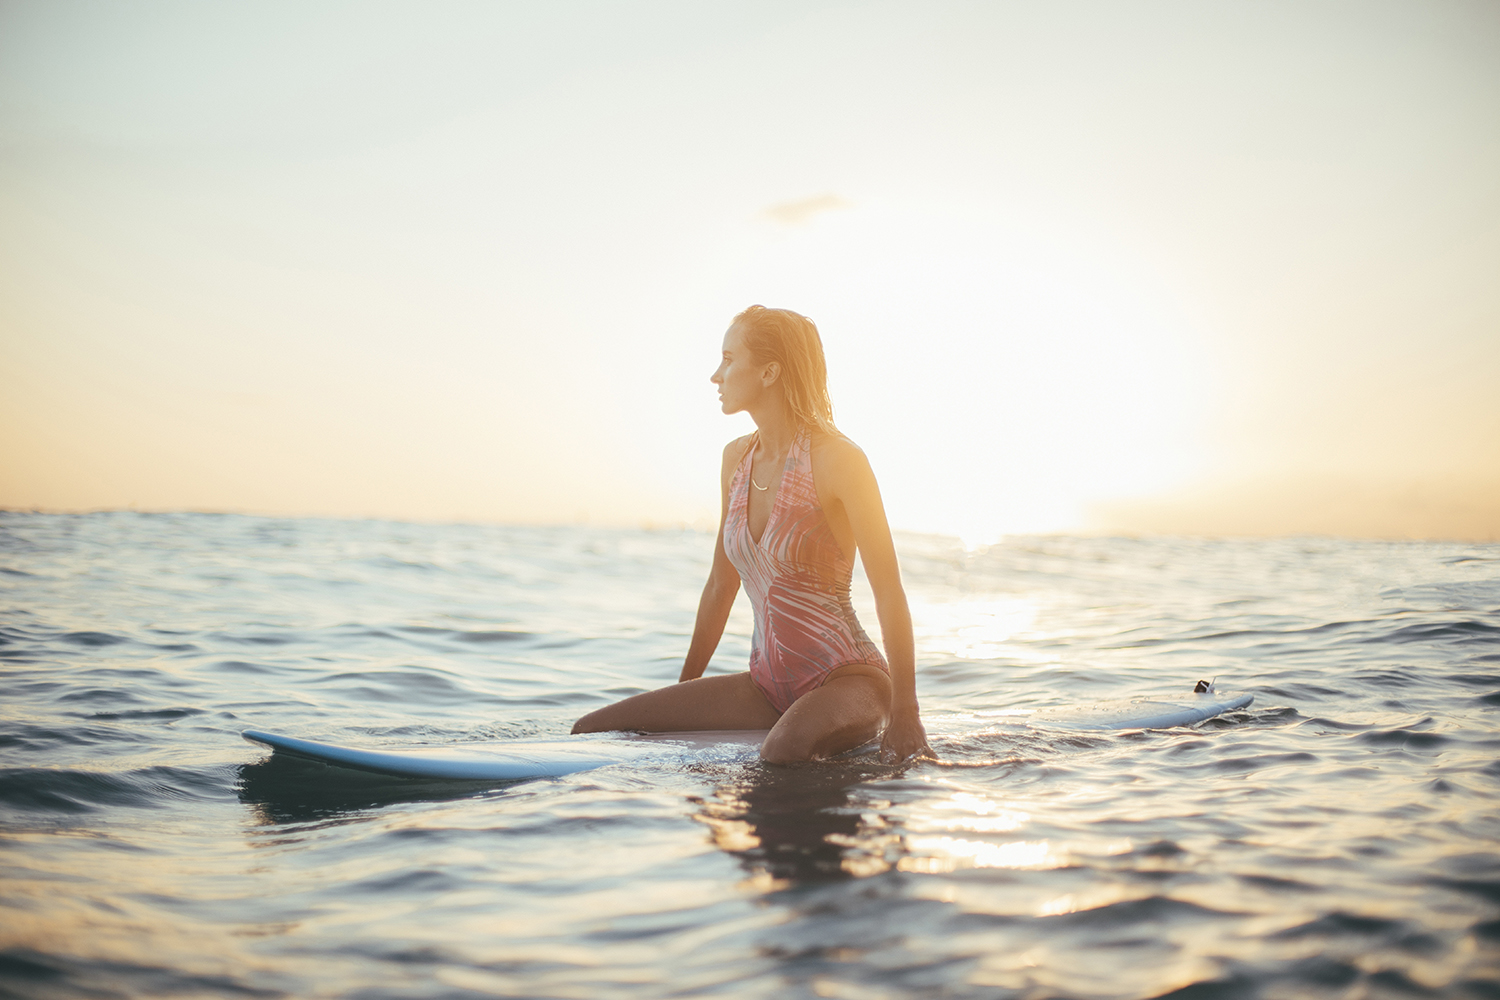 Surf with Wavehuggers (Aug 11) is a two-hour class with ocean-conscious surf instructors.